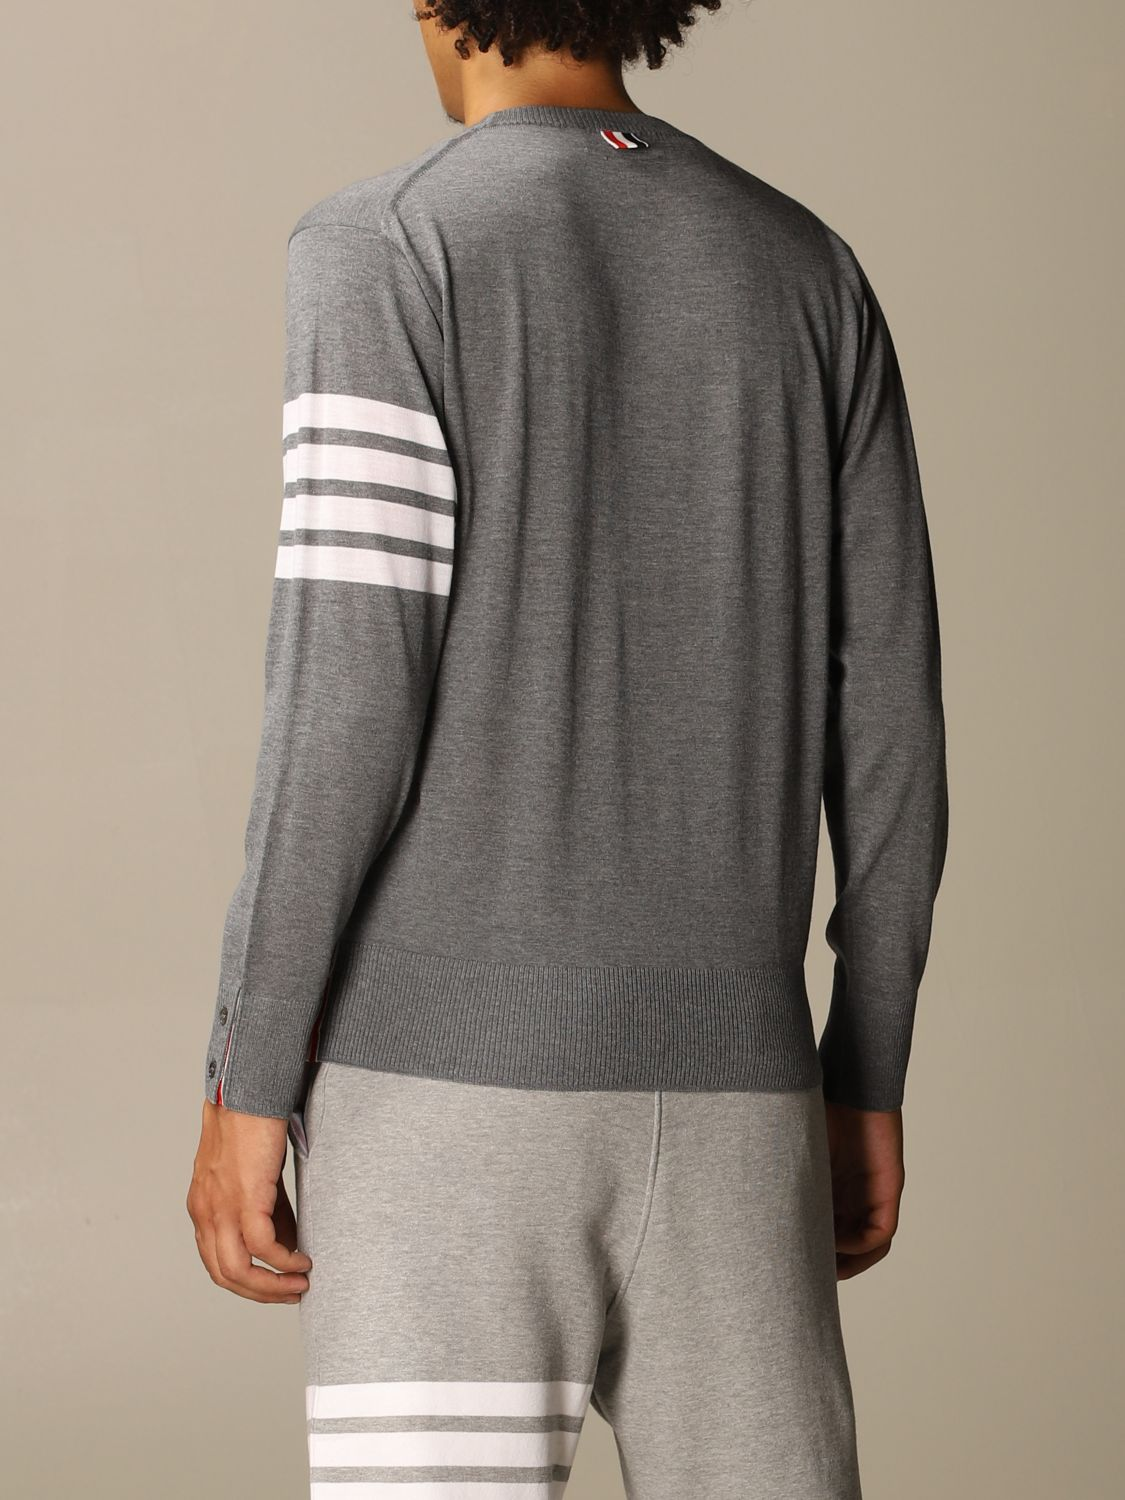 Sweater Thom Browne: Thom Browne pullover in merino wool with bands charcoal 3